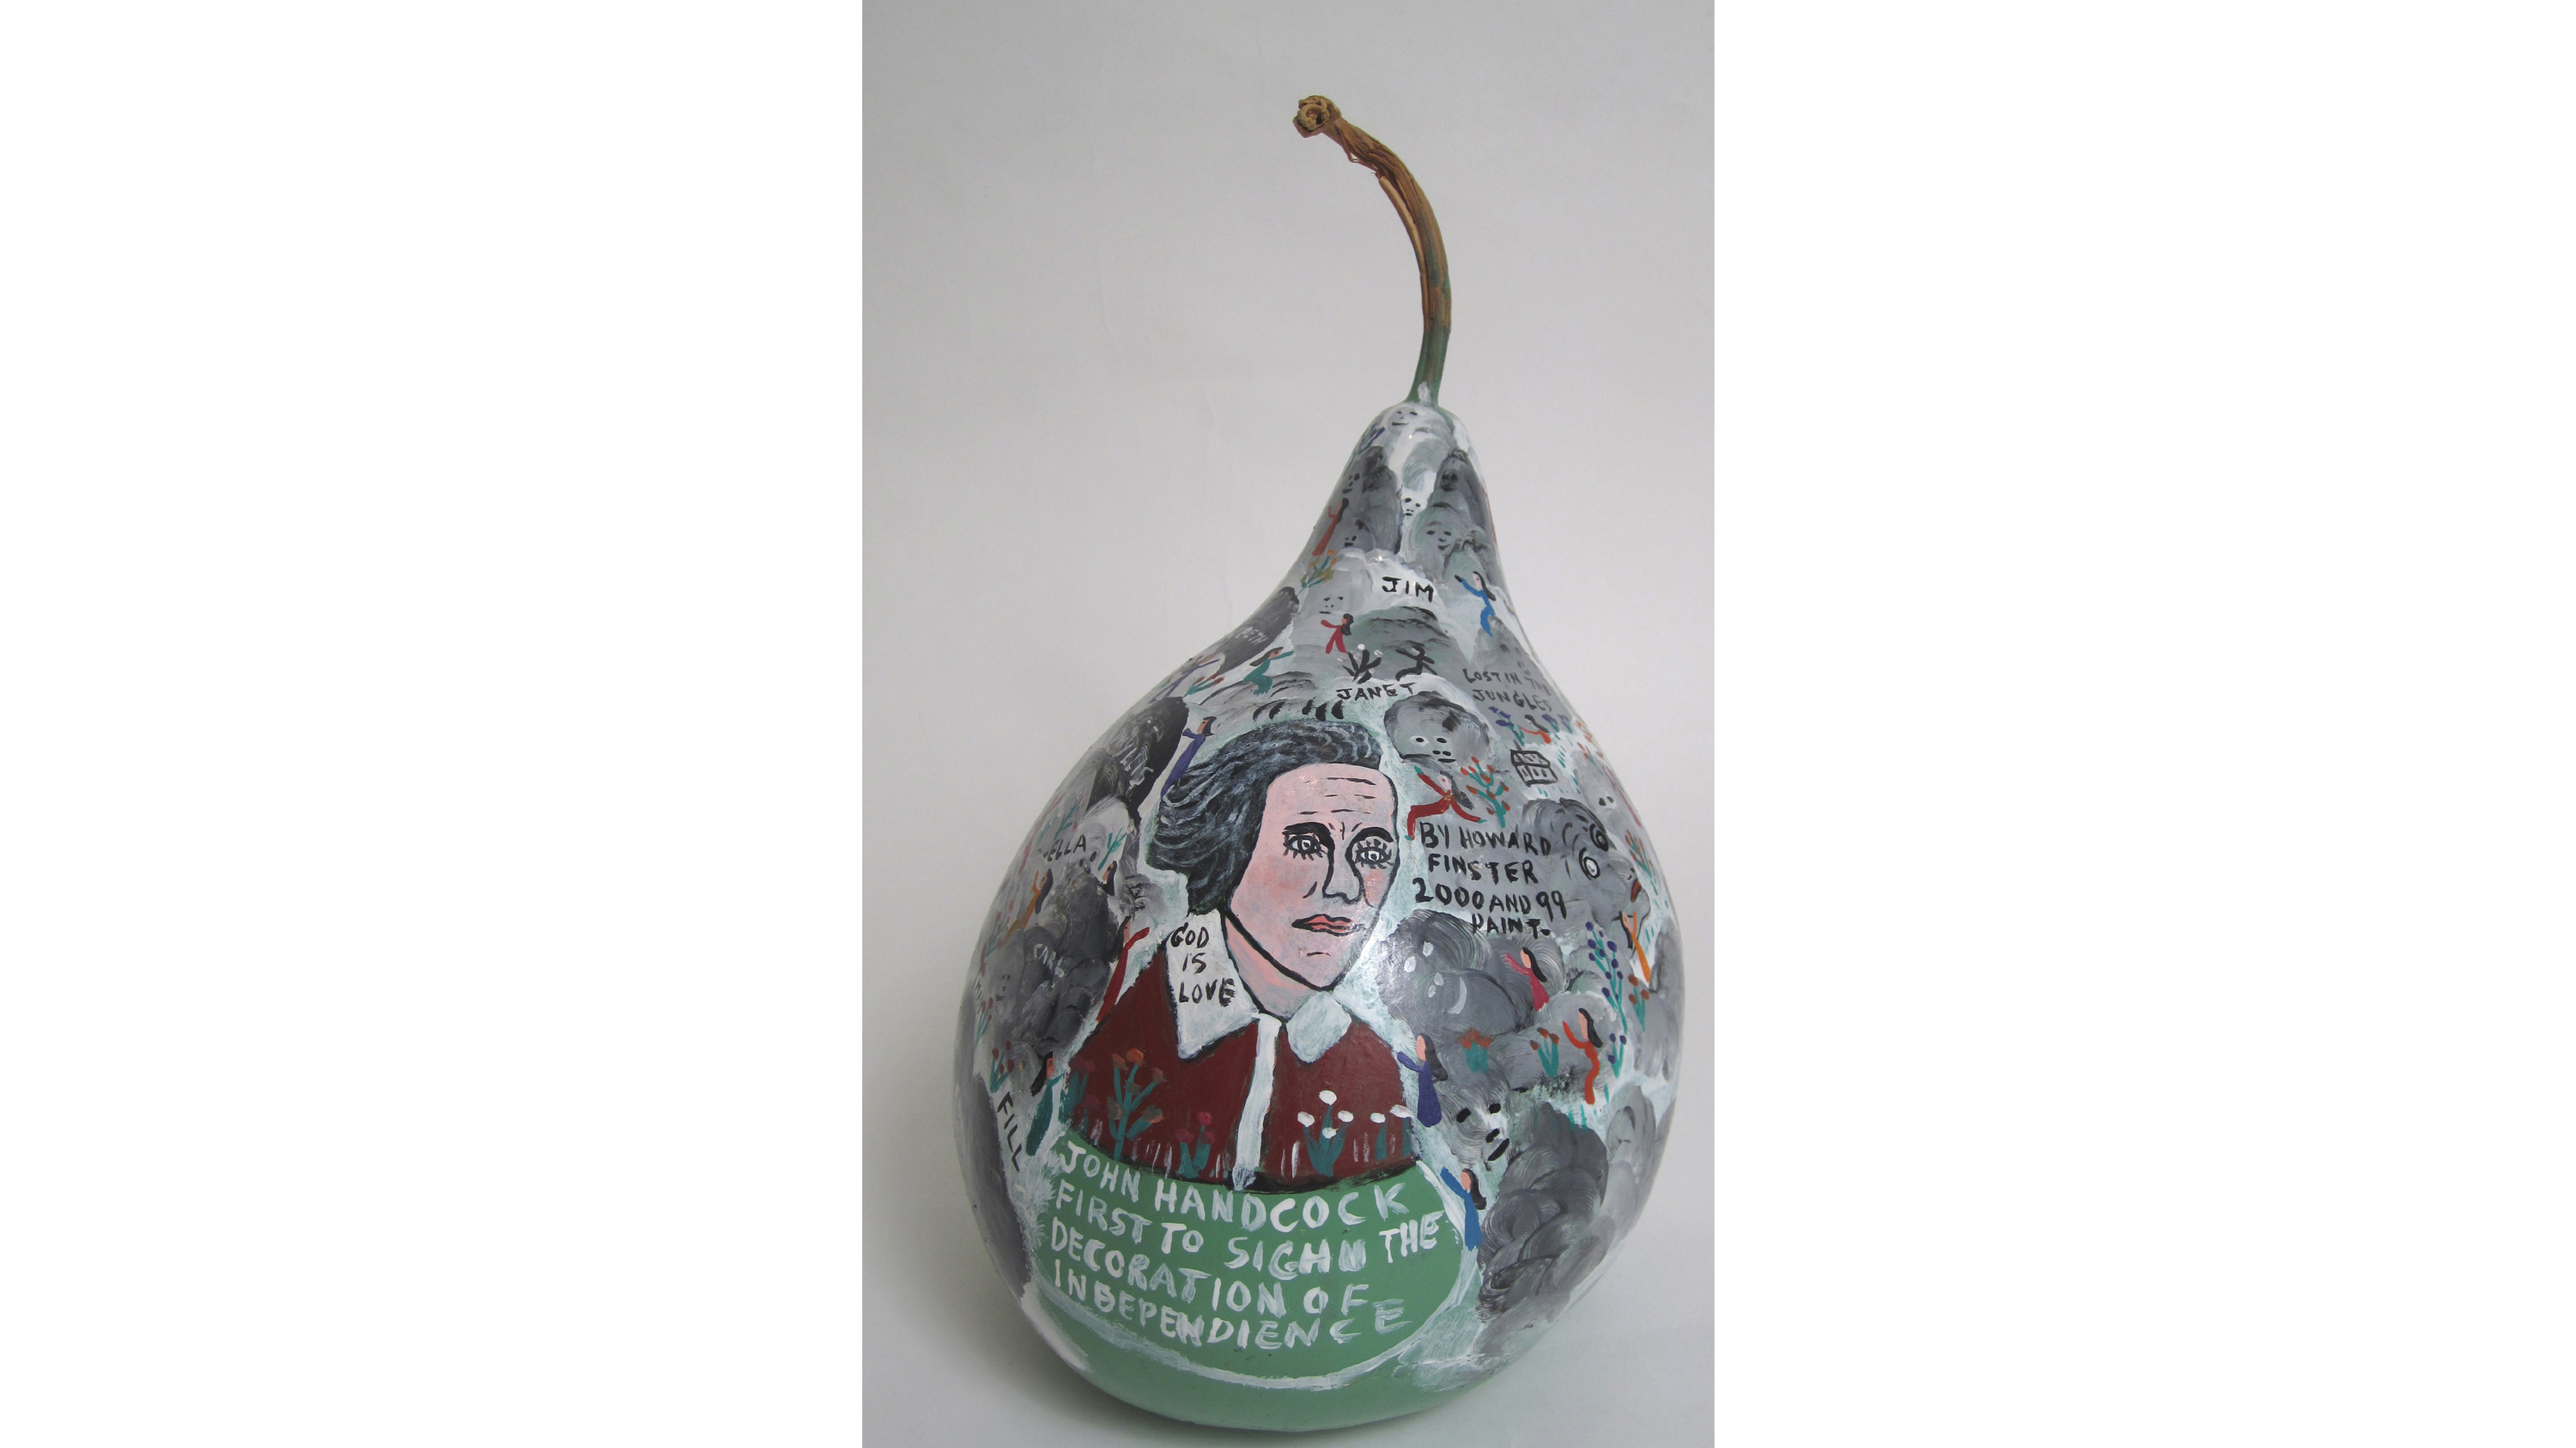 Howard Finster, I AM A Gourd, 1982. 12 x 7 inches diameter